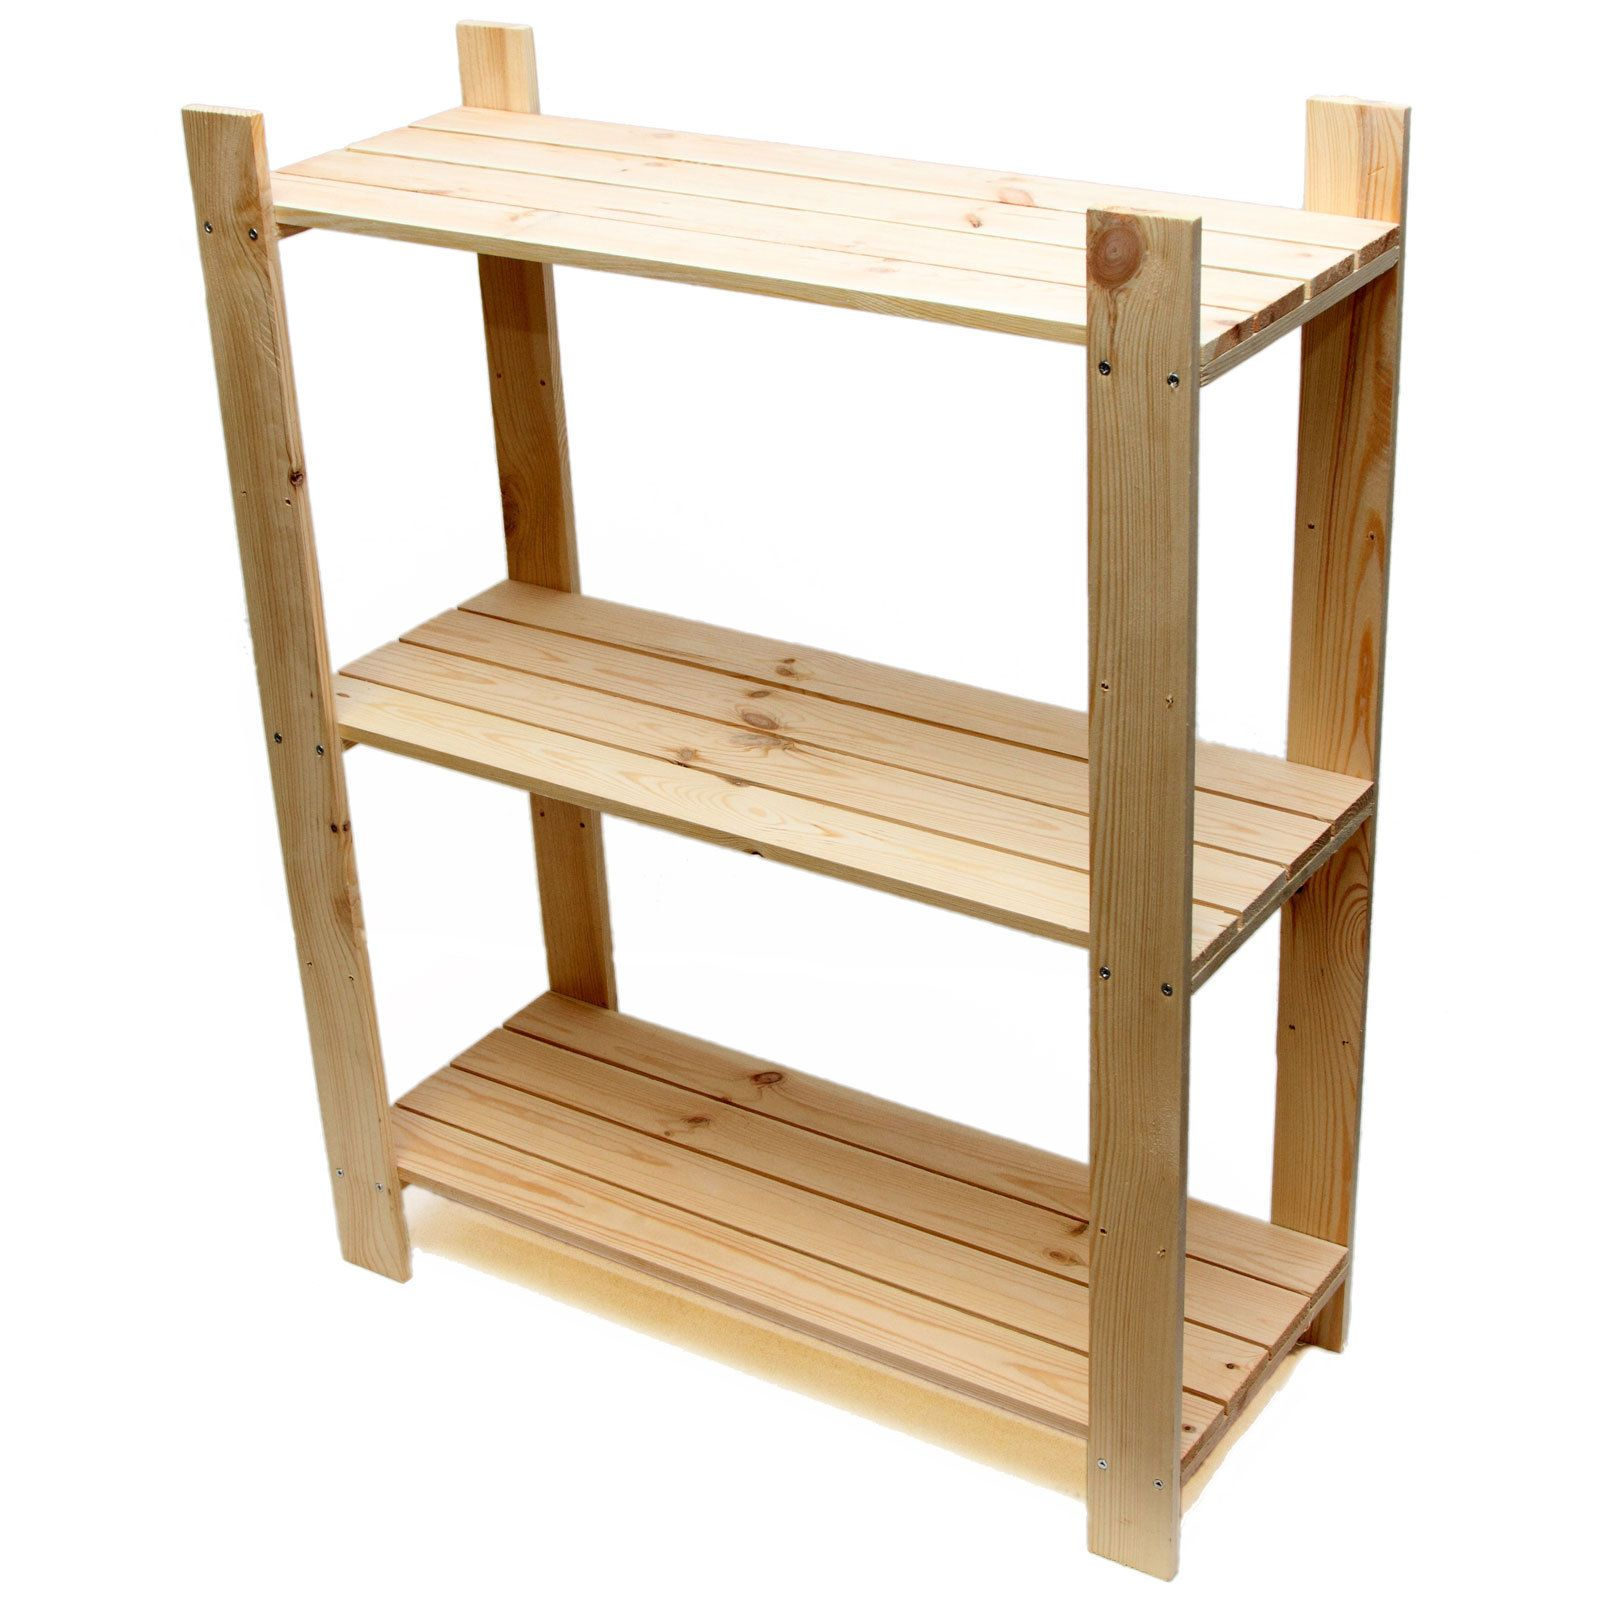 3 Tier Pine Shelf Unit - Pine Shelves with 3 Wooden Shelves - Freestanding Rack | Pine shelves ...